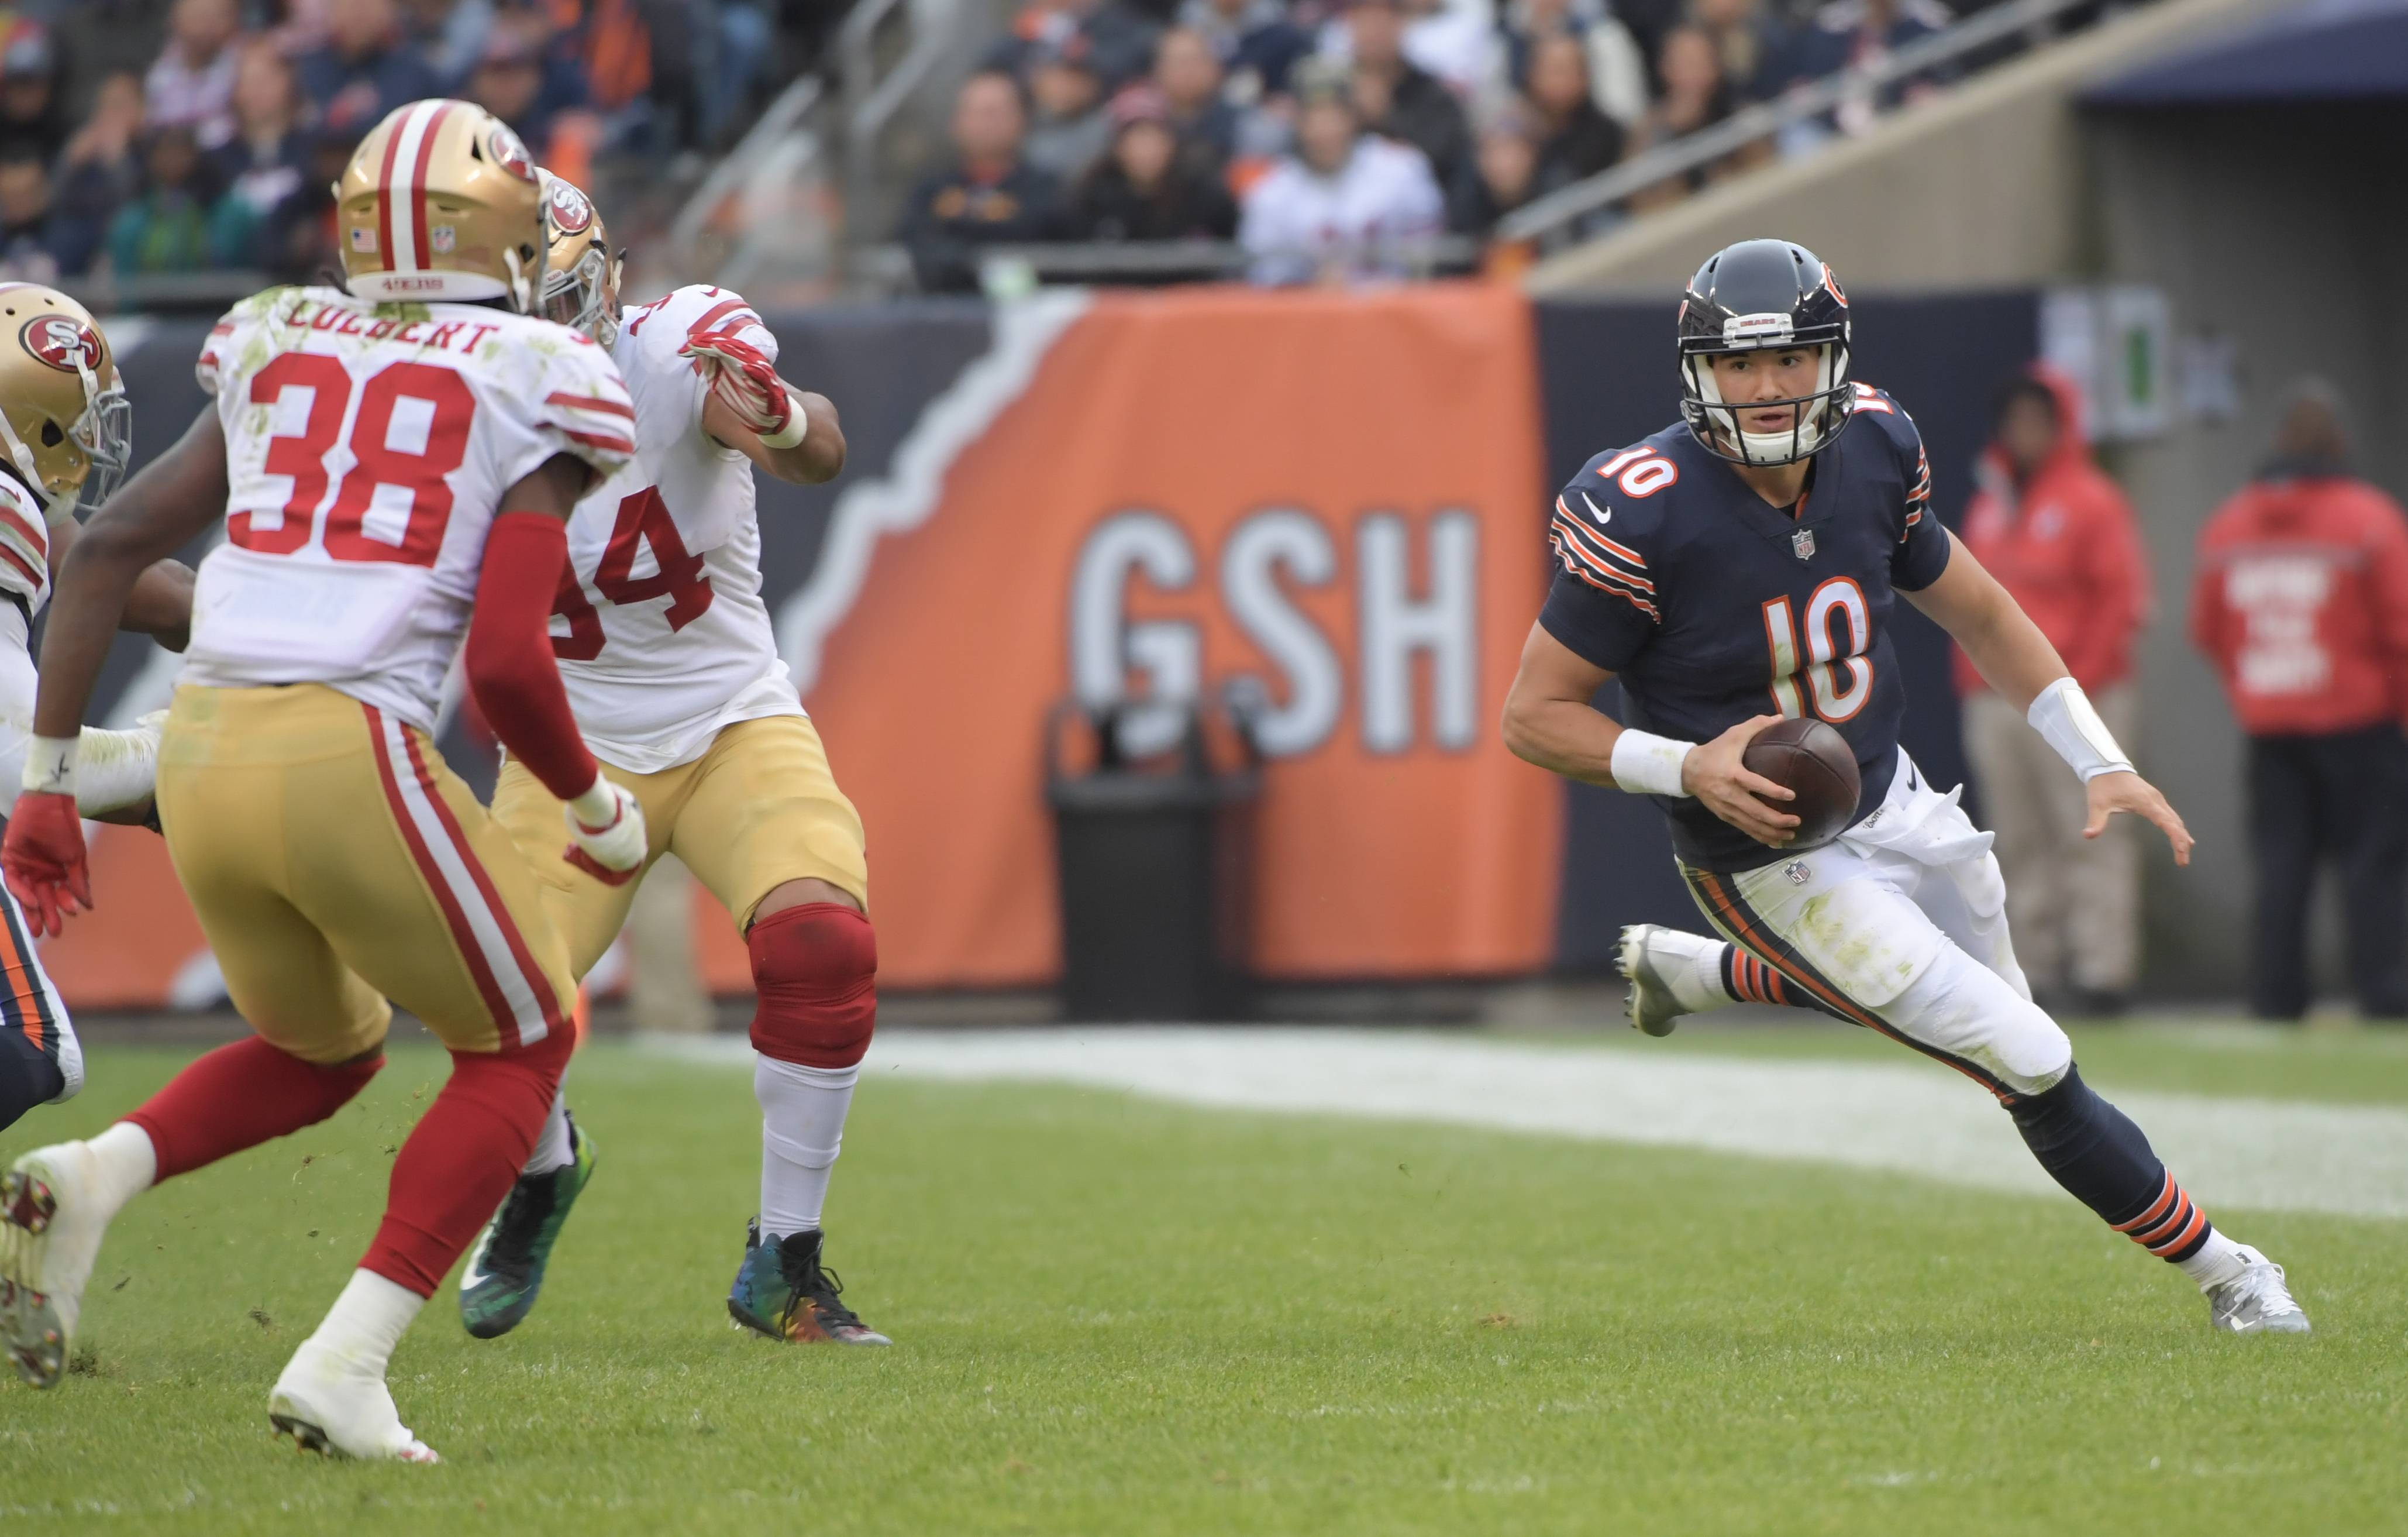 Mark Black/mblack@dailyherald.com Chicago Bears' quarterback Mitchell Trubisky (10) scrambles with the ball toward the sideline during the Bears 14-15 loss to the San Francisco 49ers at Soldier Field on December 3, 2017.